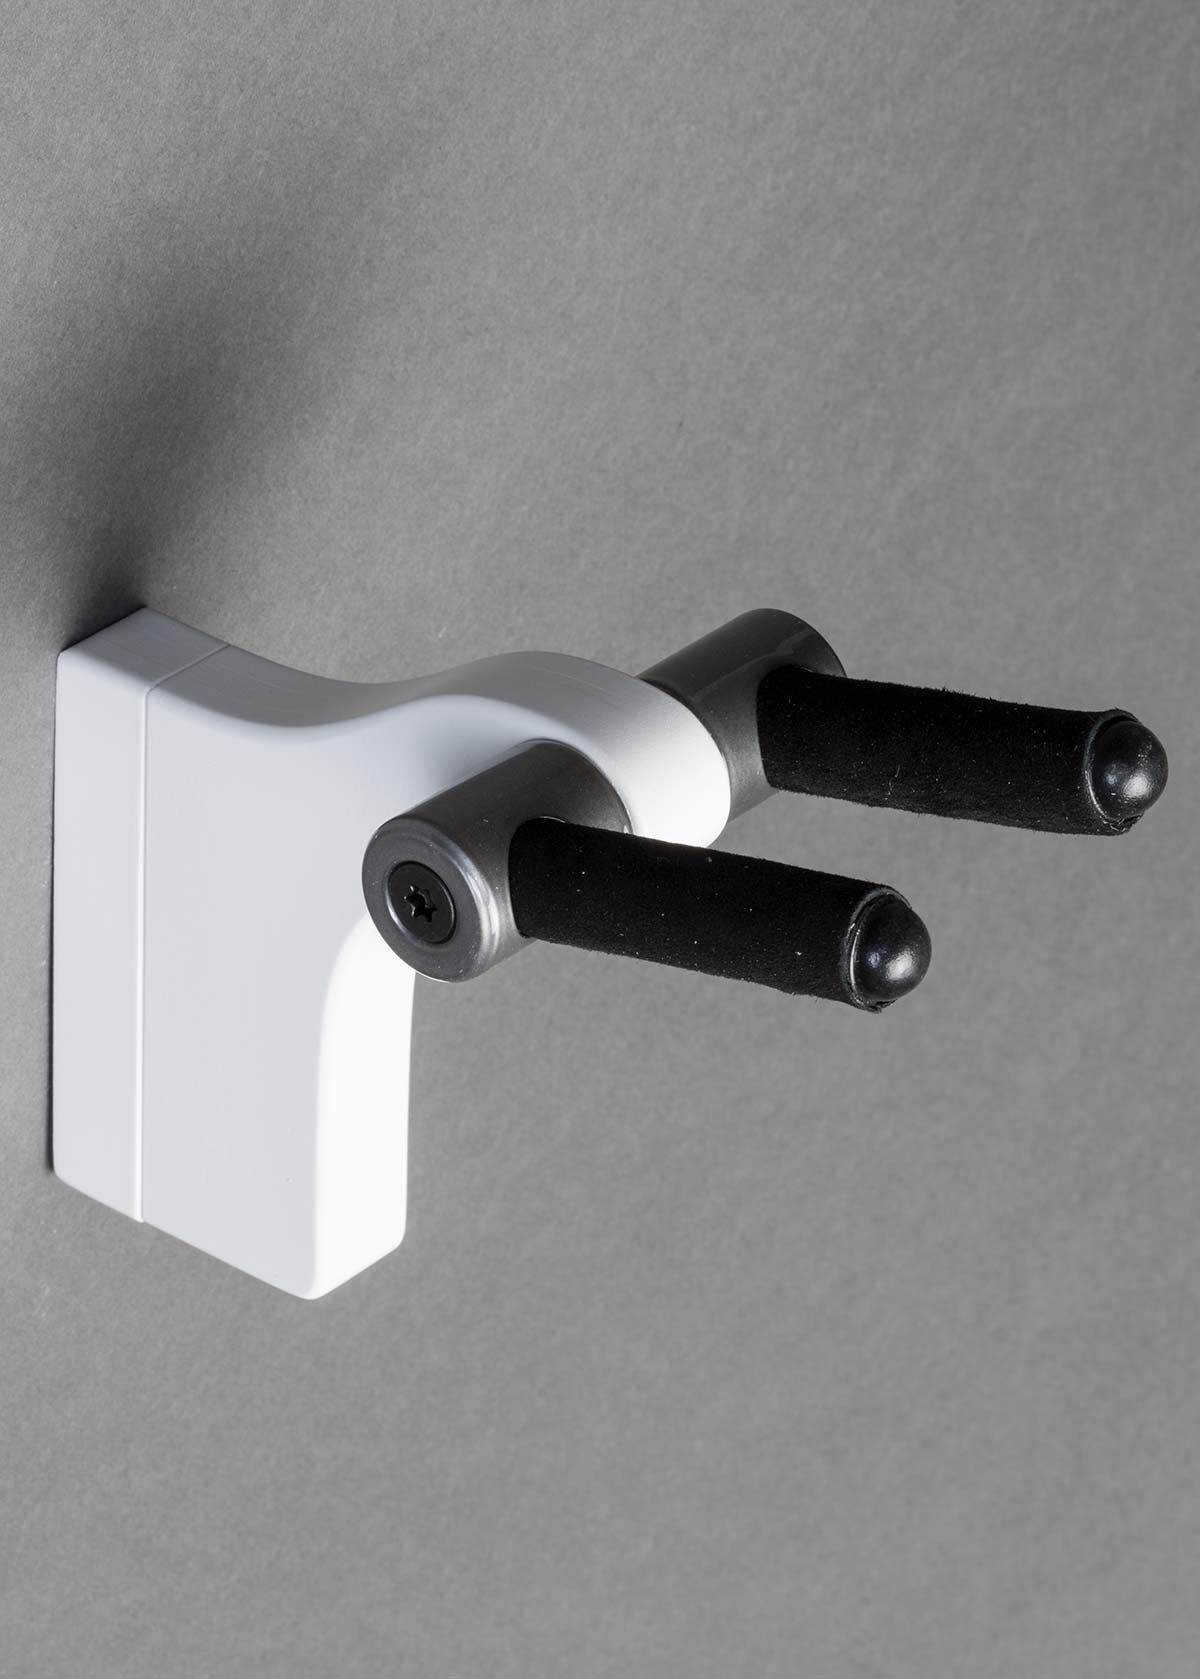 AM Wall Hanger - White Lacquer